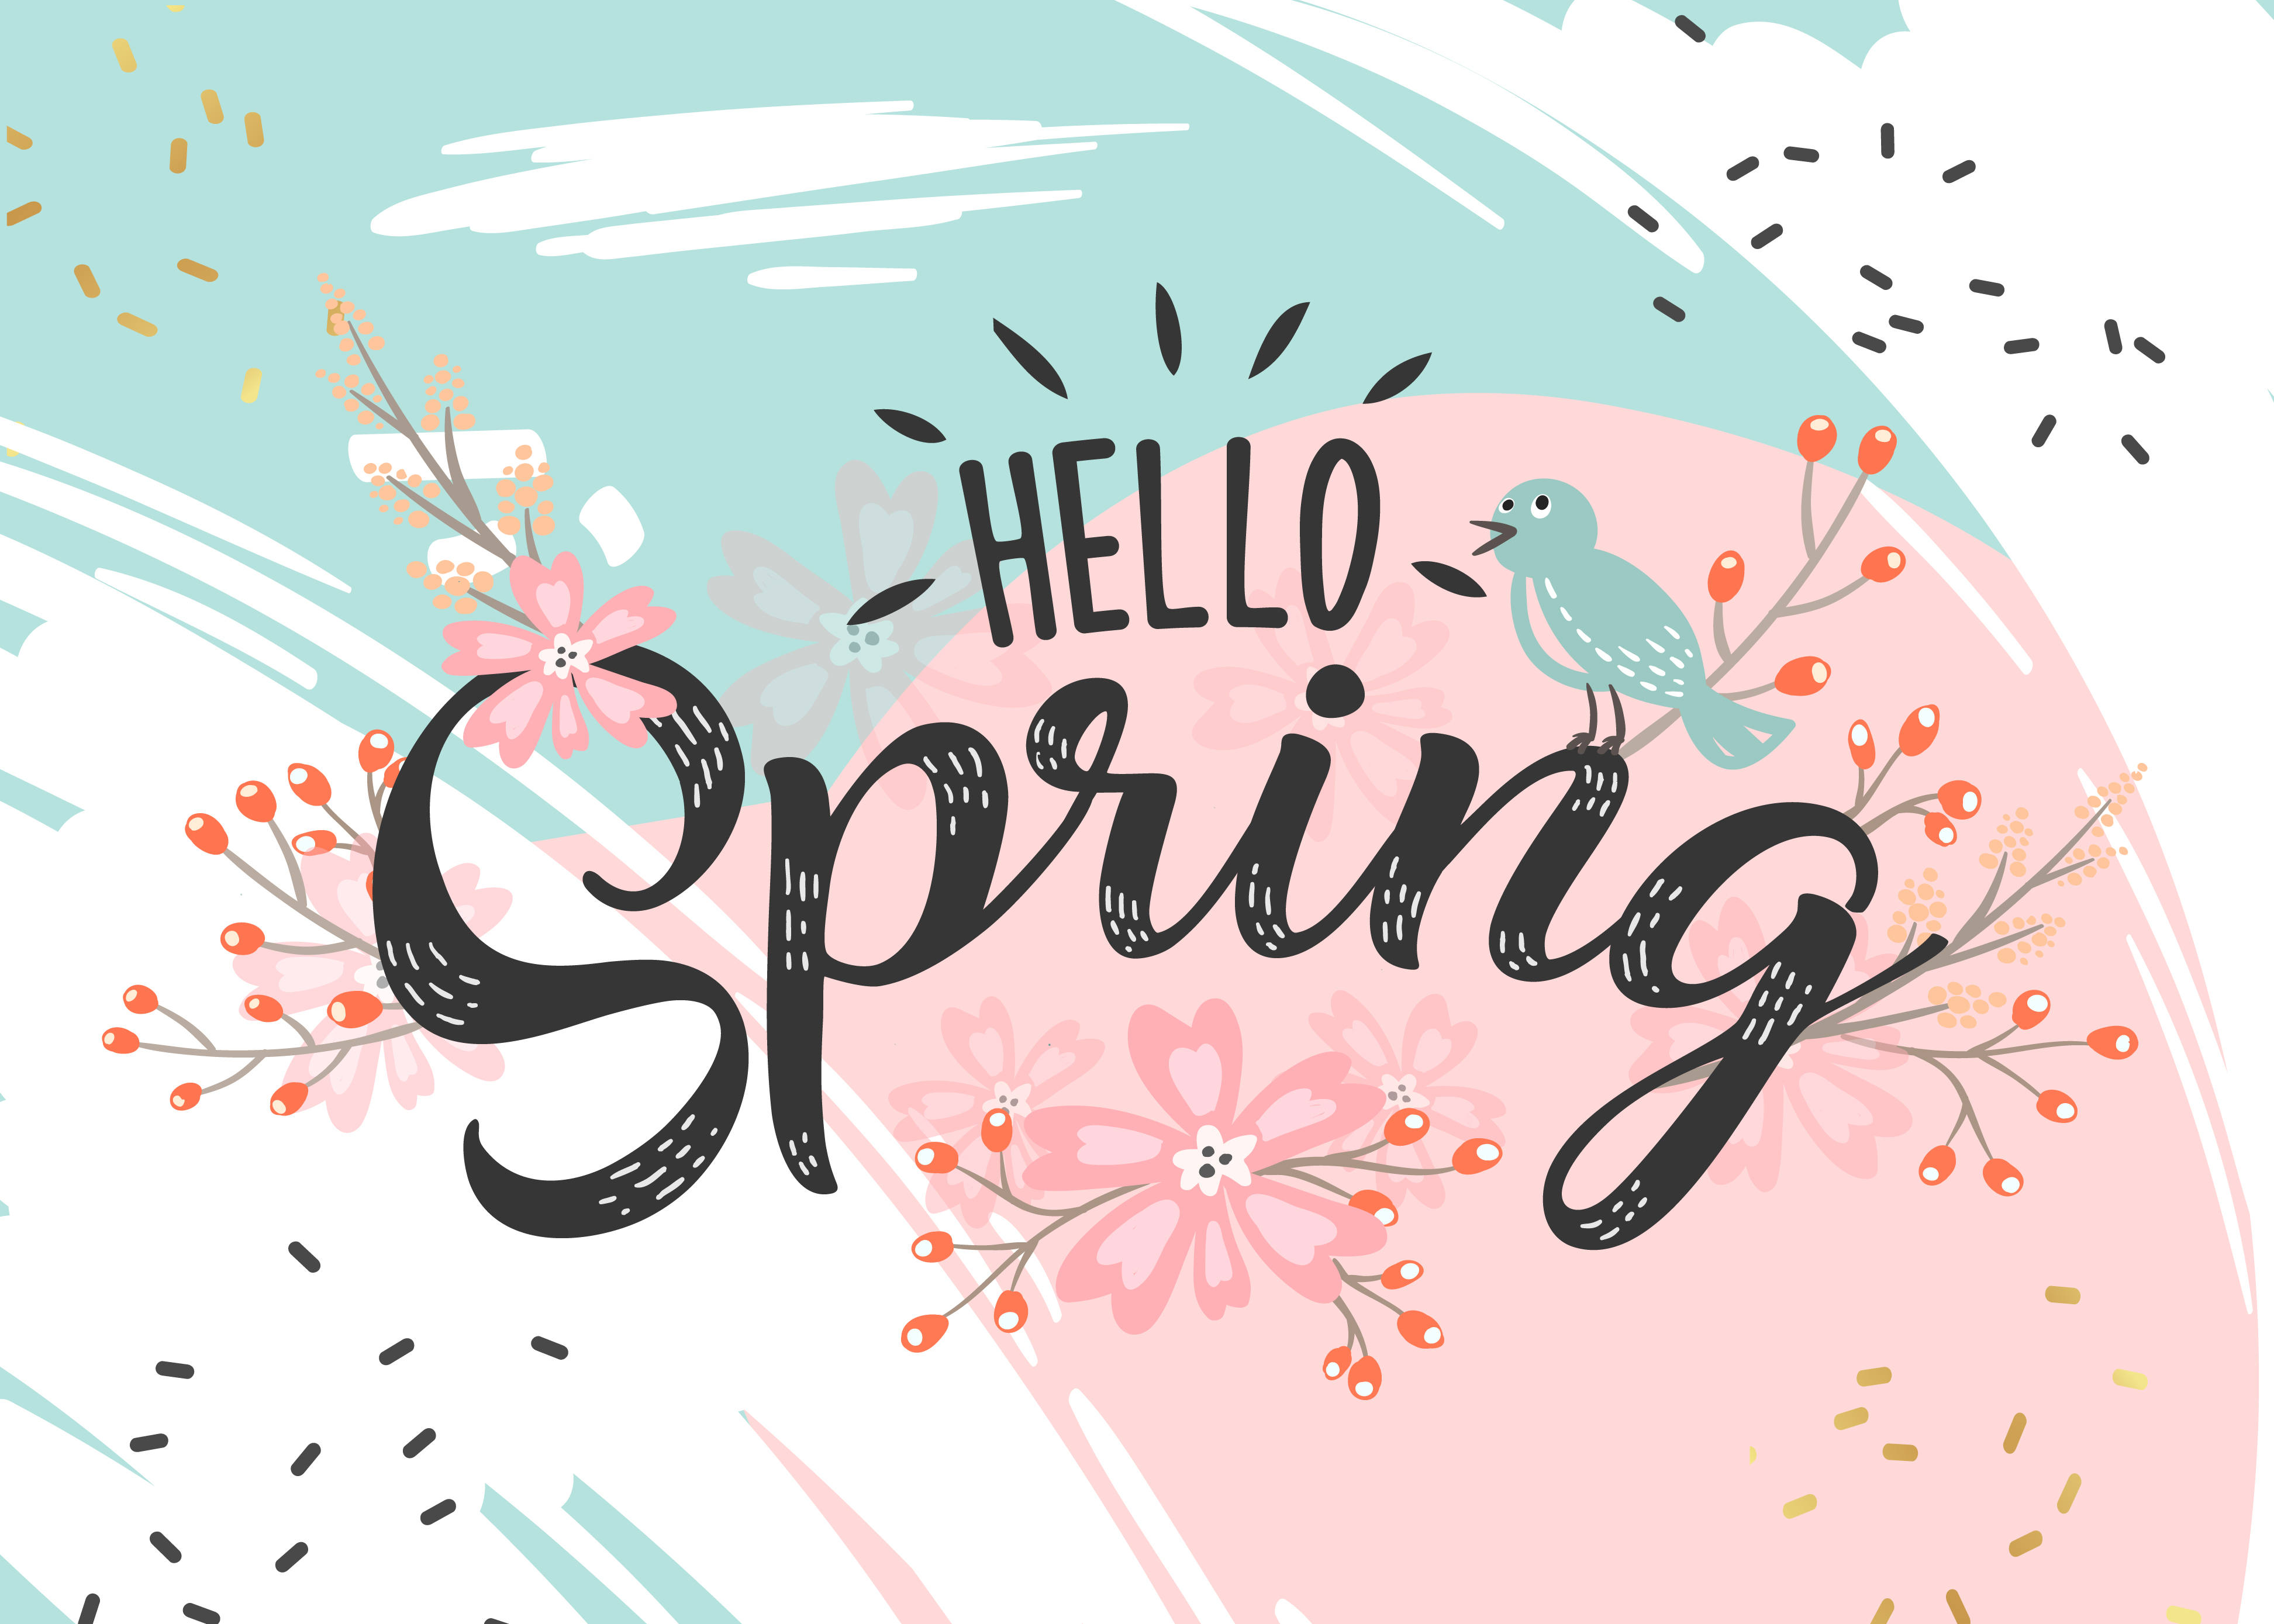 image that says hello spring, with flowers and a bird